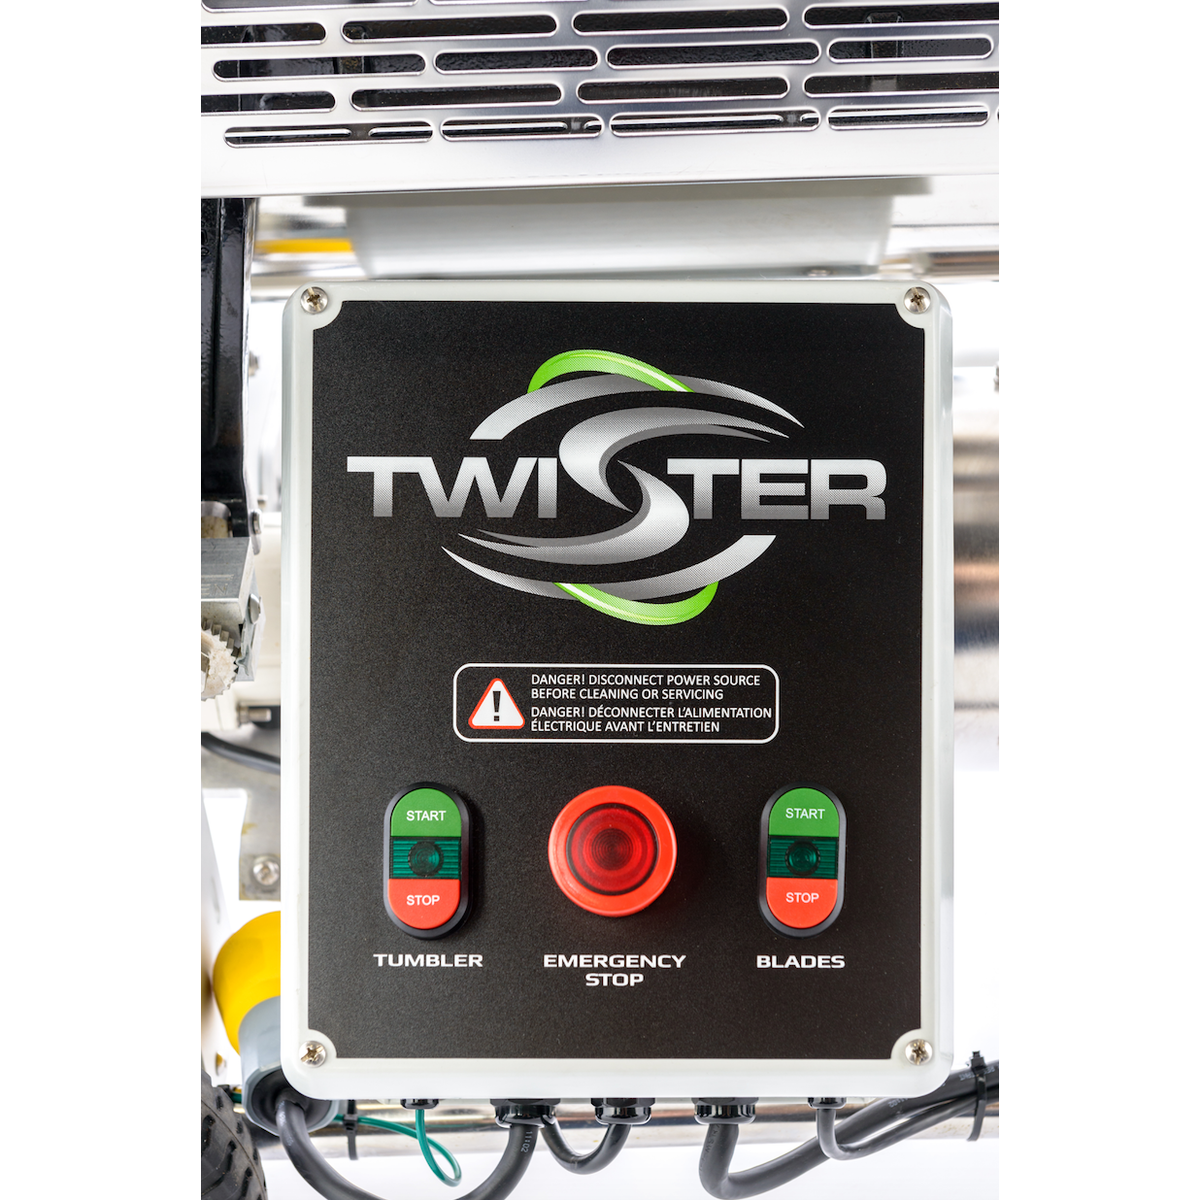 Twister Twister T2 Wet & Dry Bud Trimmer Machine